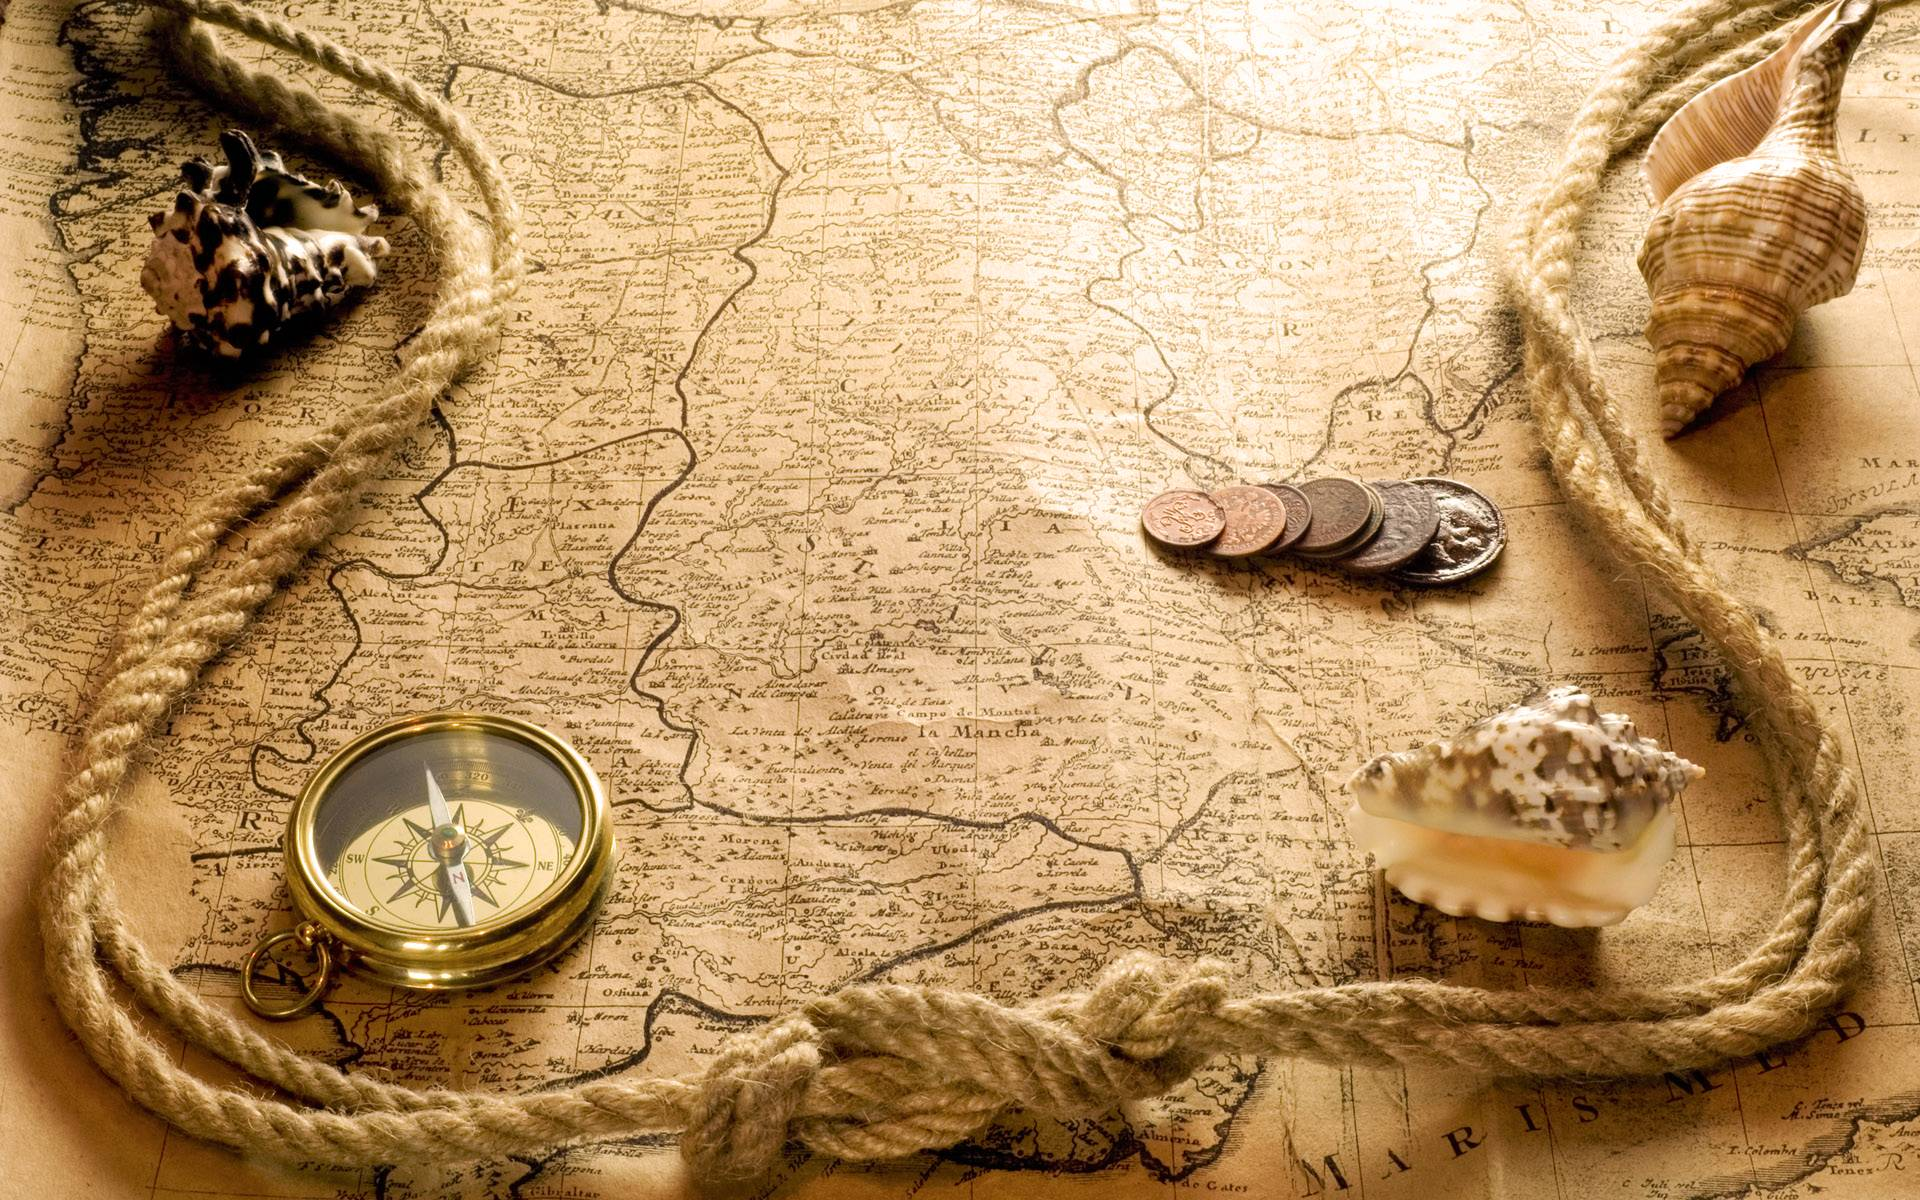 Free Download 45 Pirate Map Wallpapers Download At